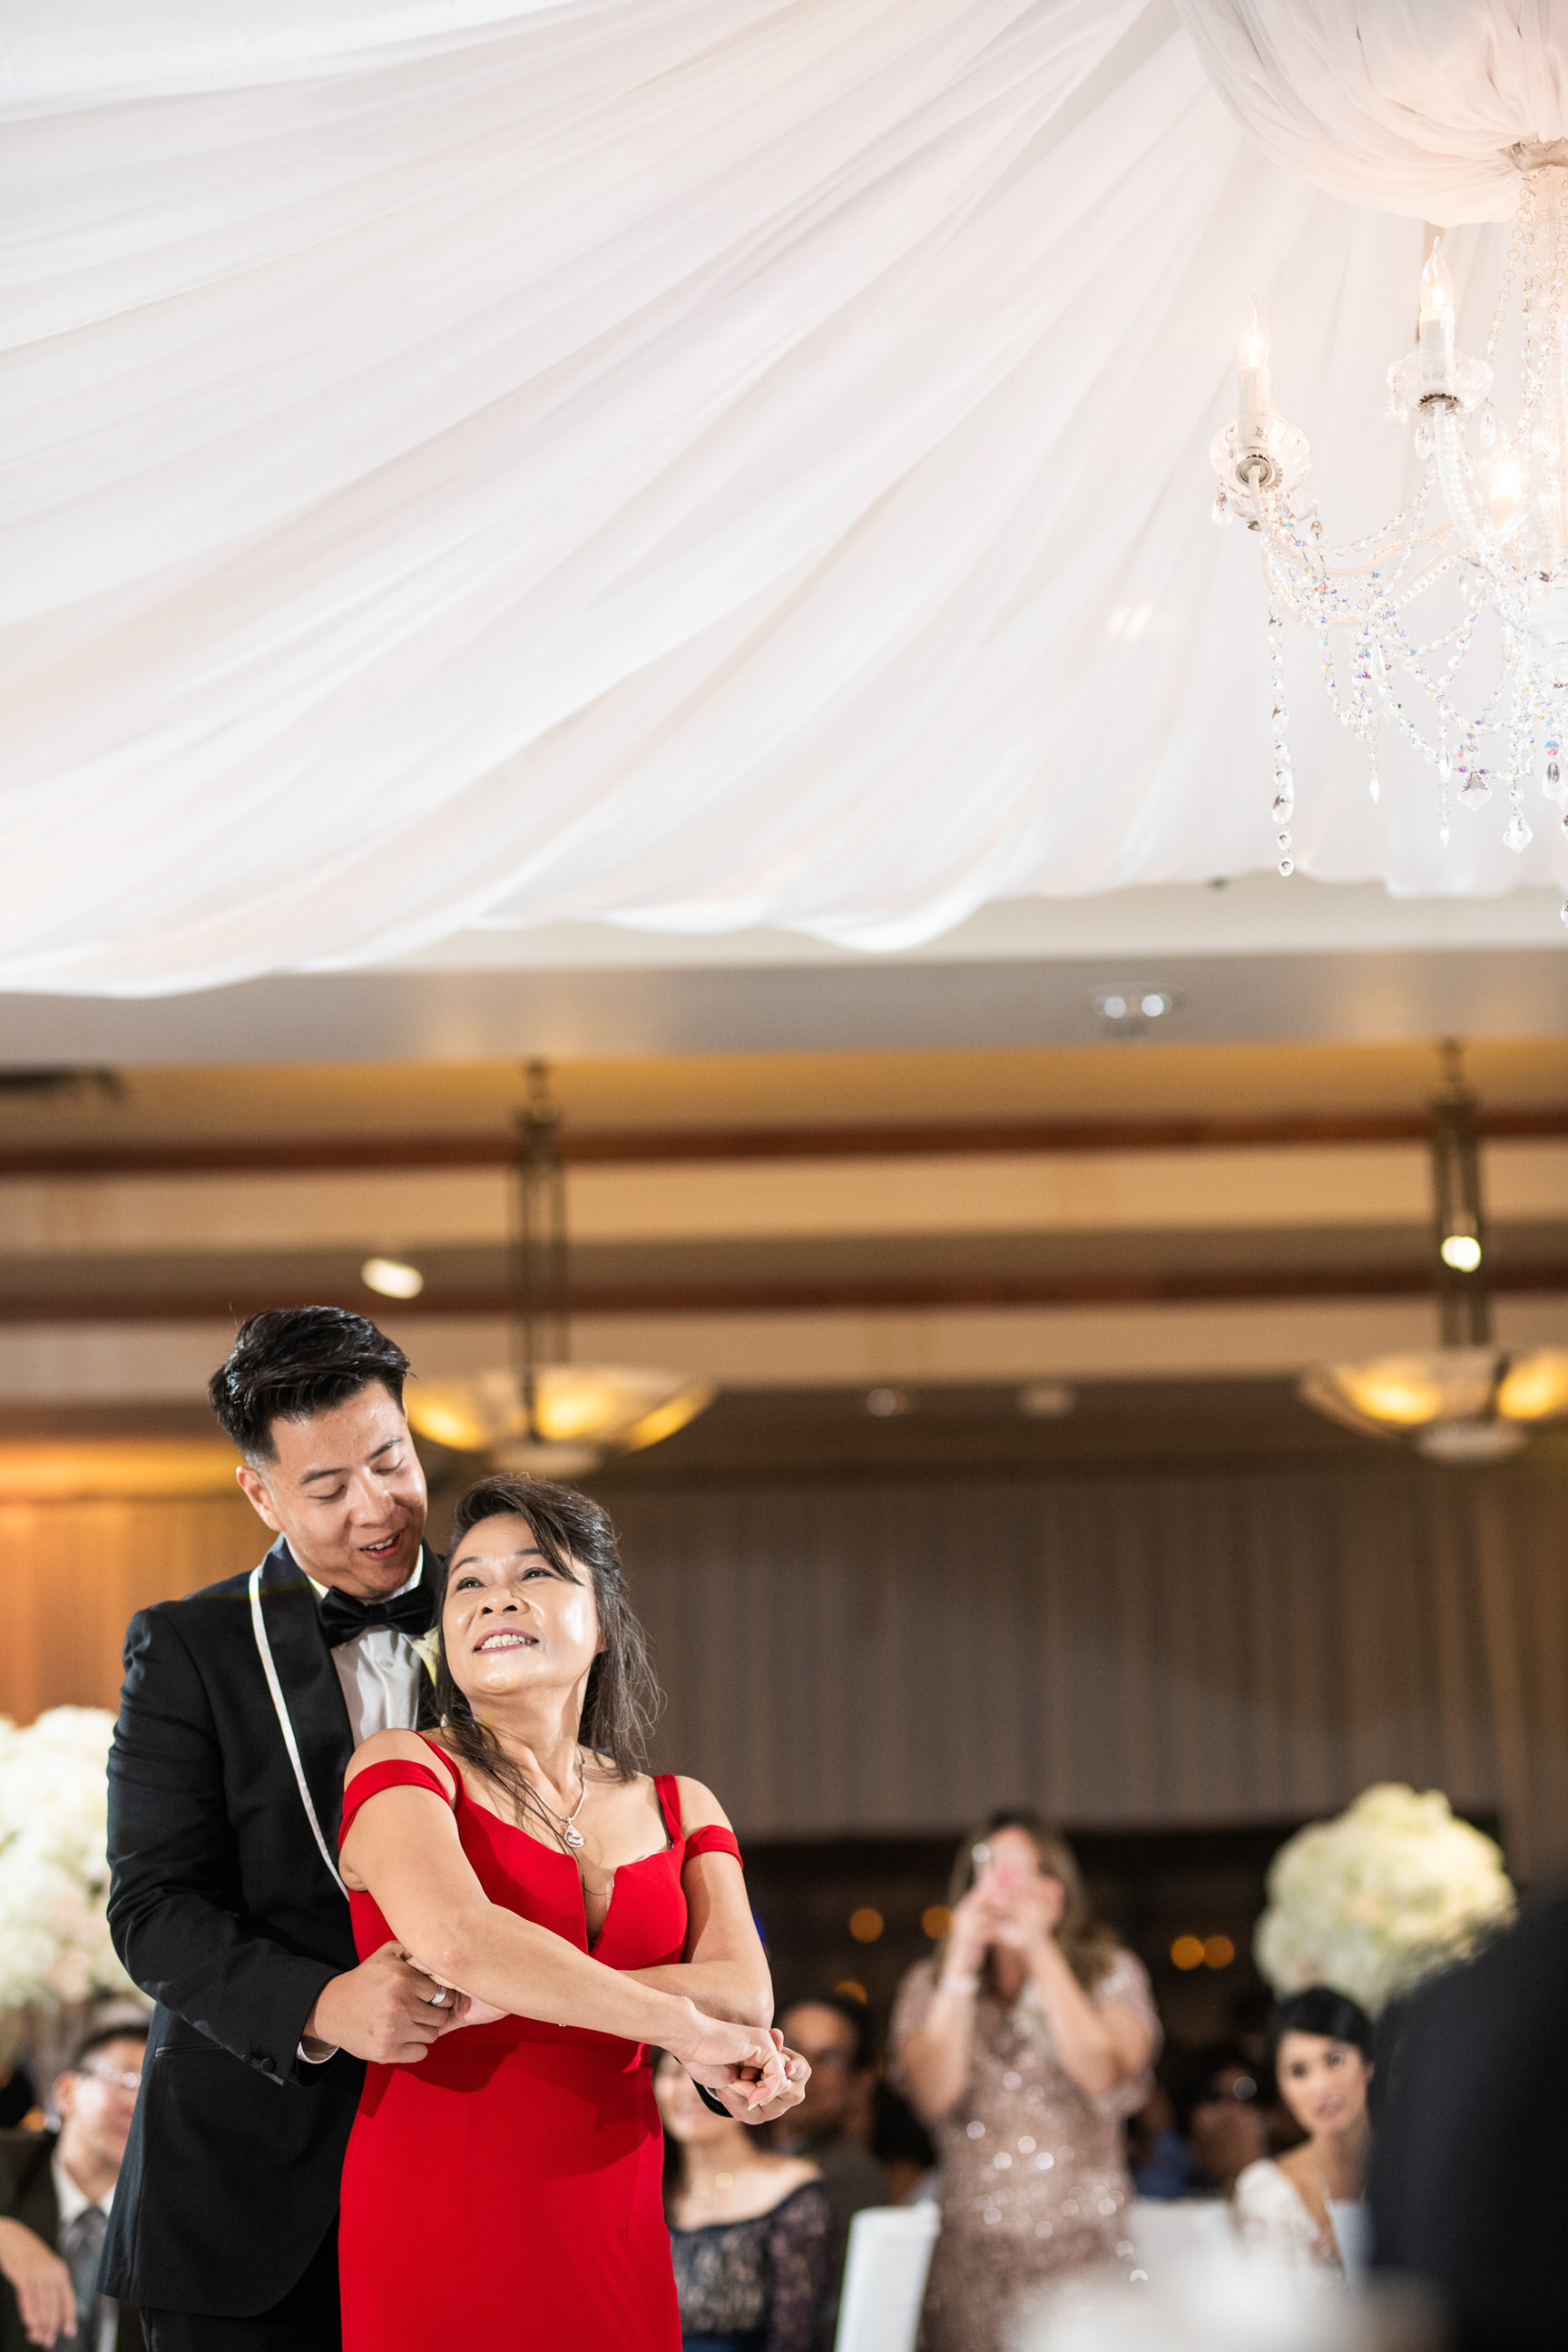 Dream_Wedding_Thanh_Thanh-3138.jpg